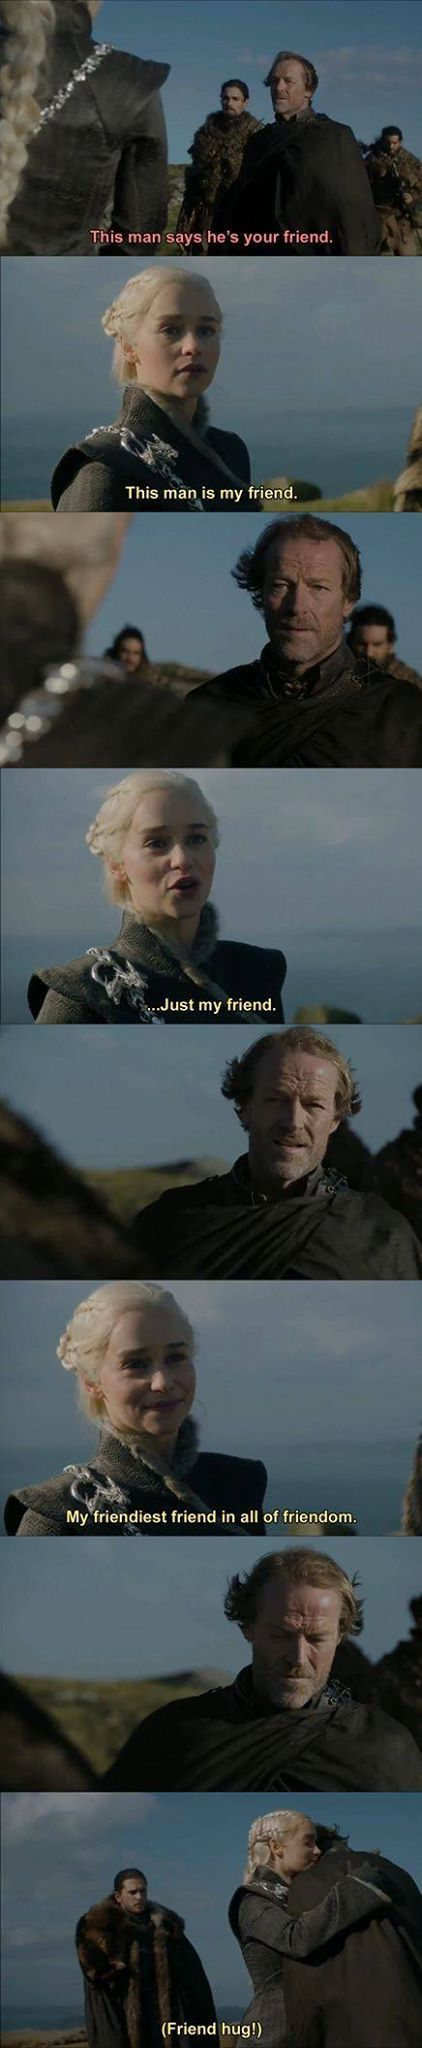 If I ever met Iain Glen ( Ser Jorah) I'd give him a Bear Hug! #ILoveJorah #Jorah&DaenerysForever